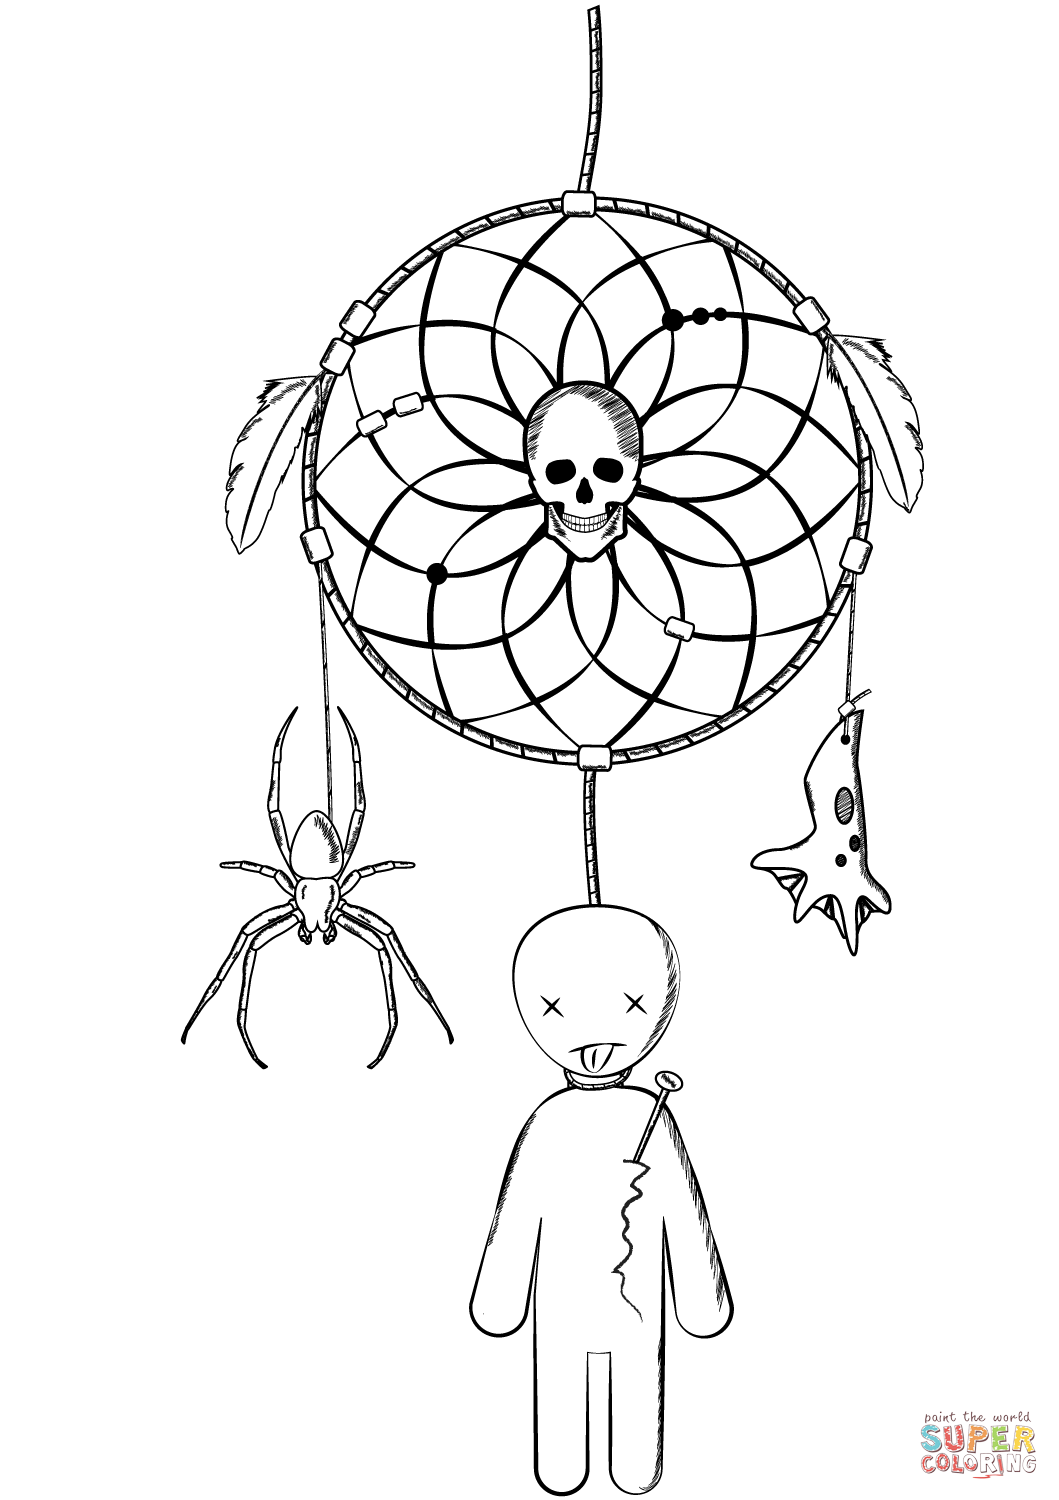 Halloween Dreamcatcher With Voodoo Doll And Spider Coloring Page From Category Select 27278 Printable Crafts Of Cartoons Nature Animals